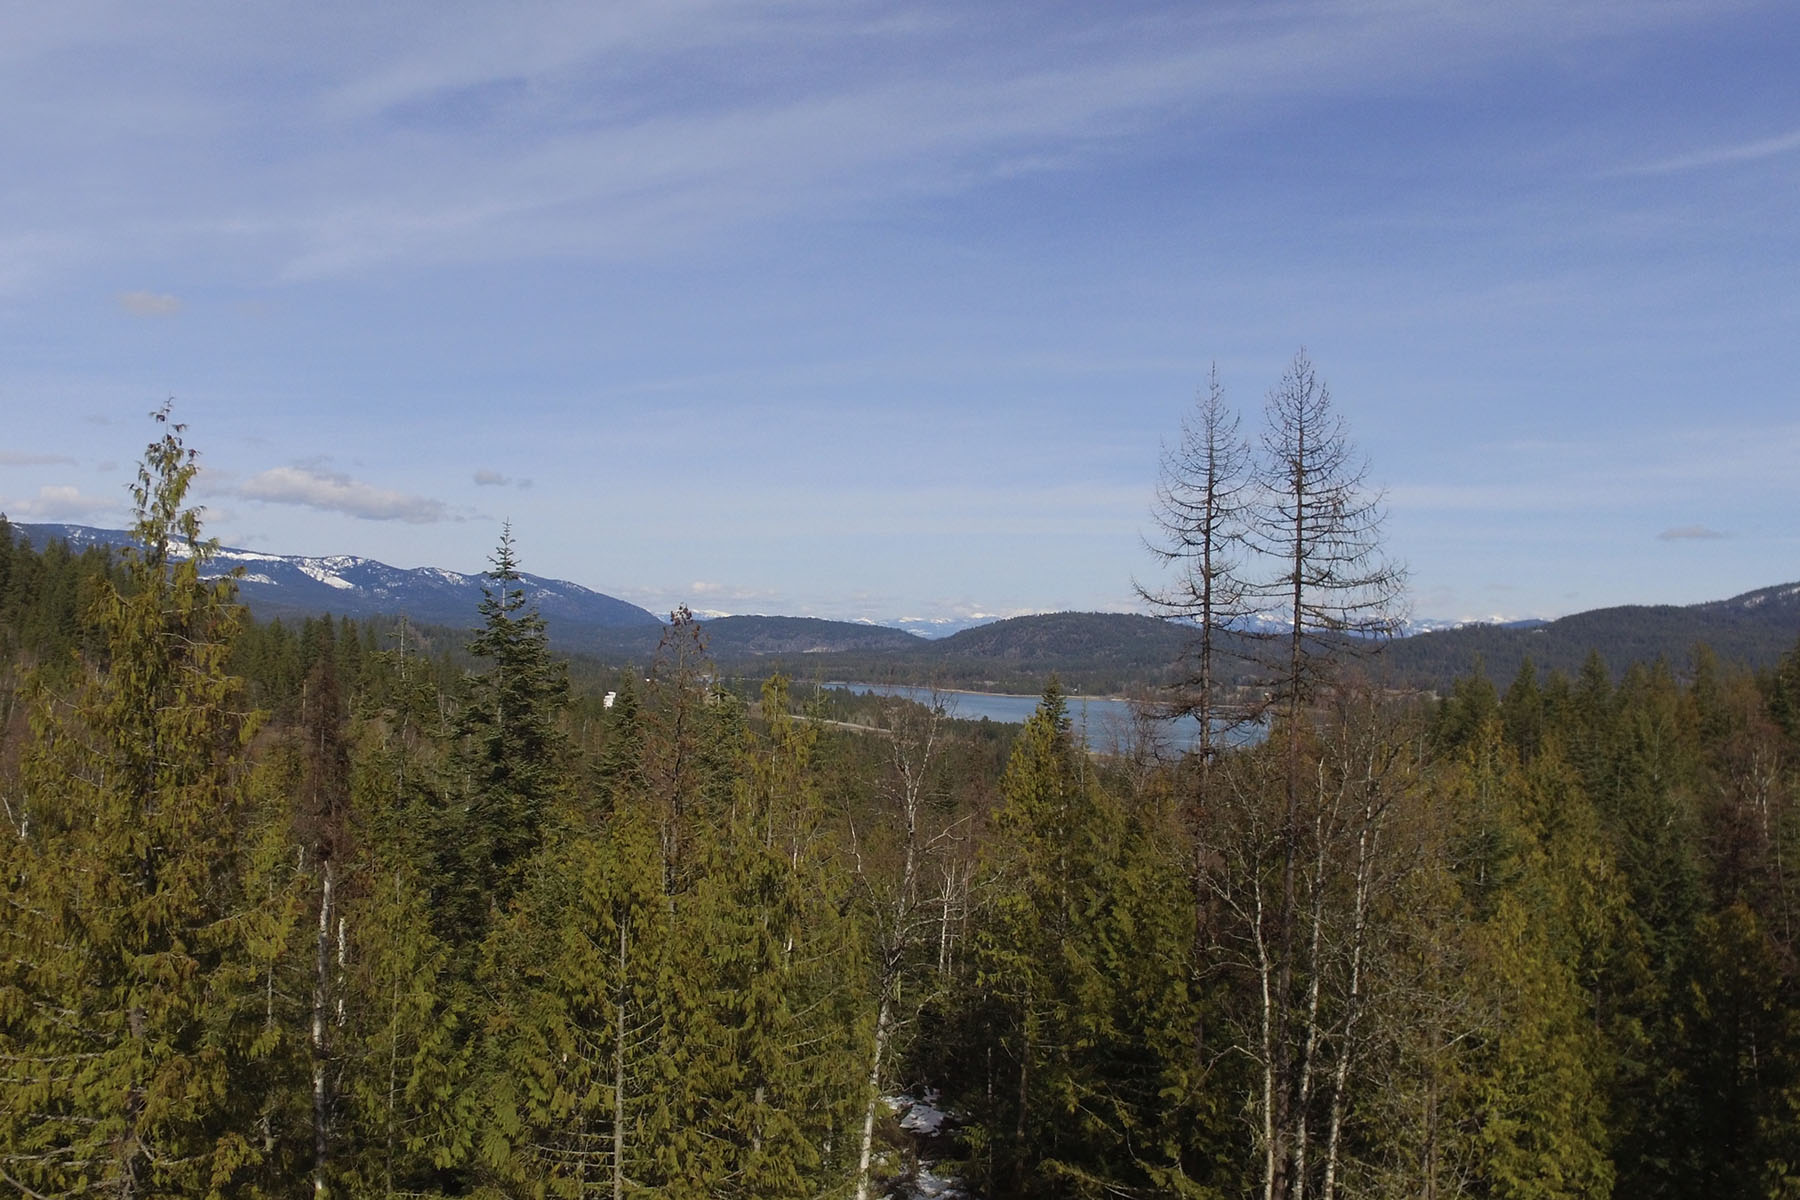 Land for Sale at Beautiful treed 17.3 acres with breathtaking views of Pend Oreille River NNA Lot 2 Cresthaven Dr Sandpoint, Idaho, 83864 United States